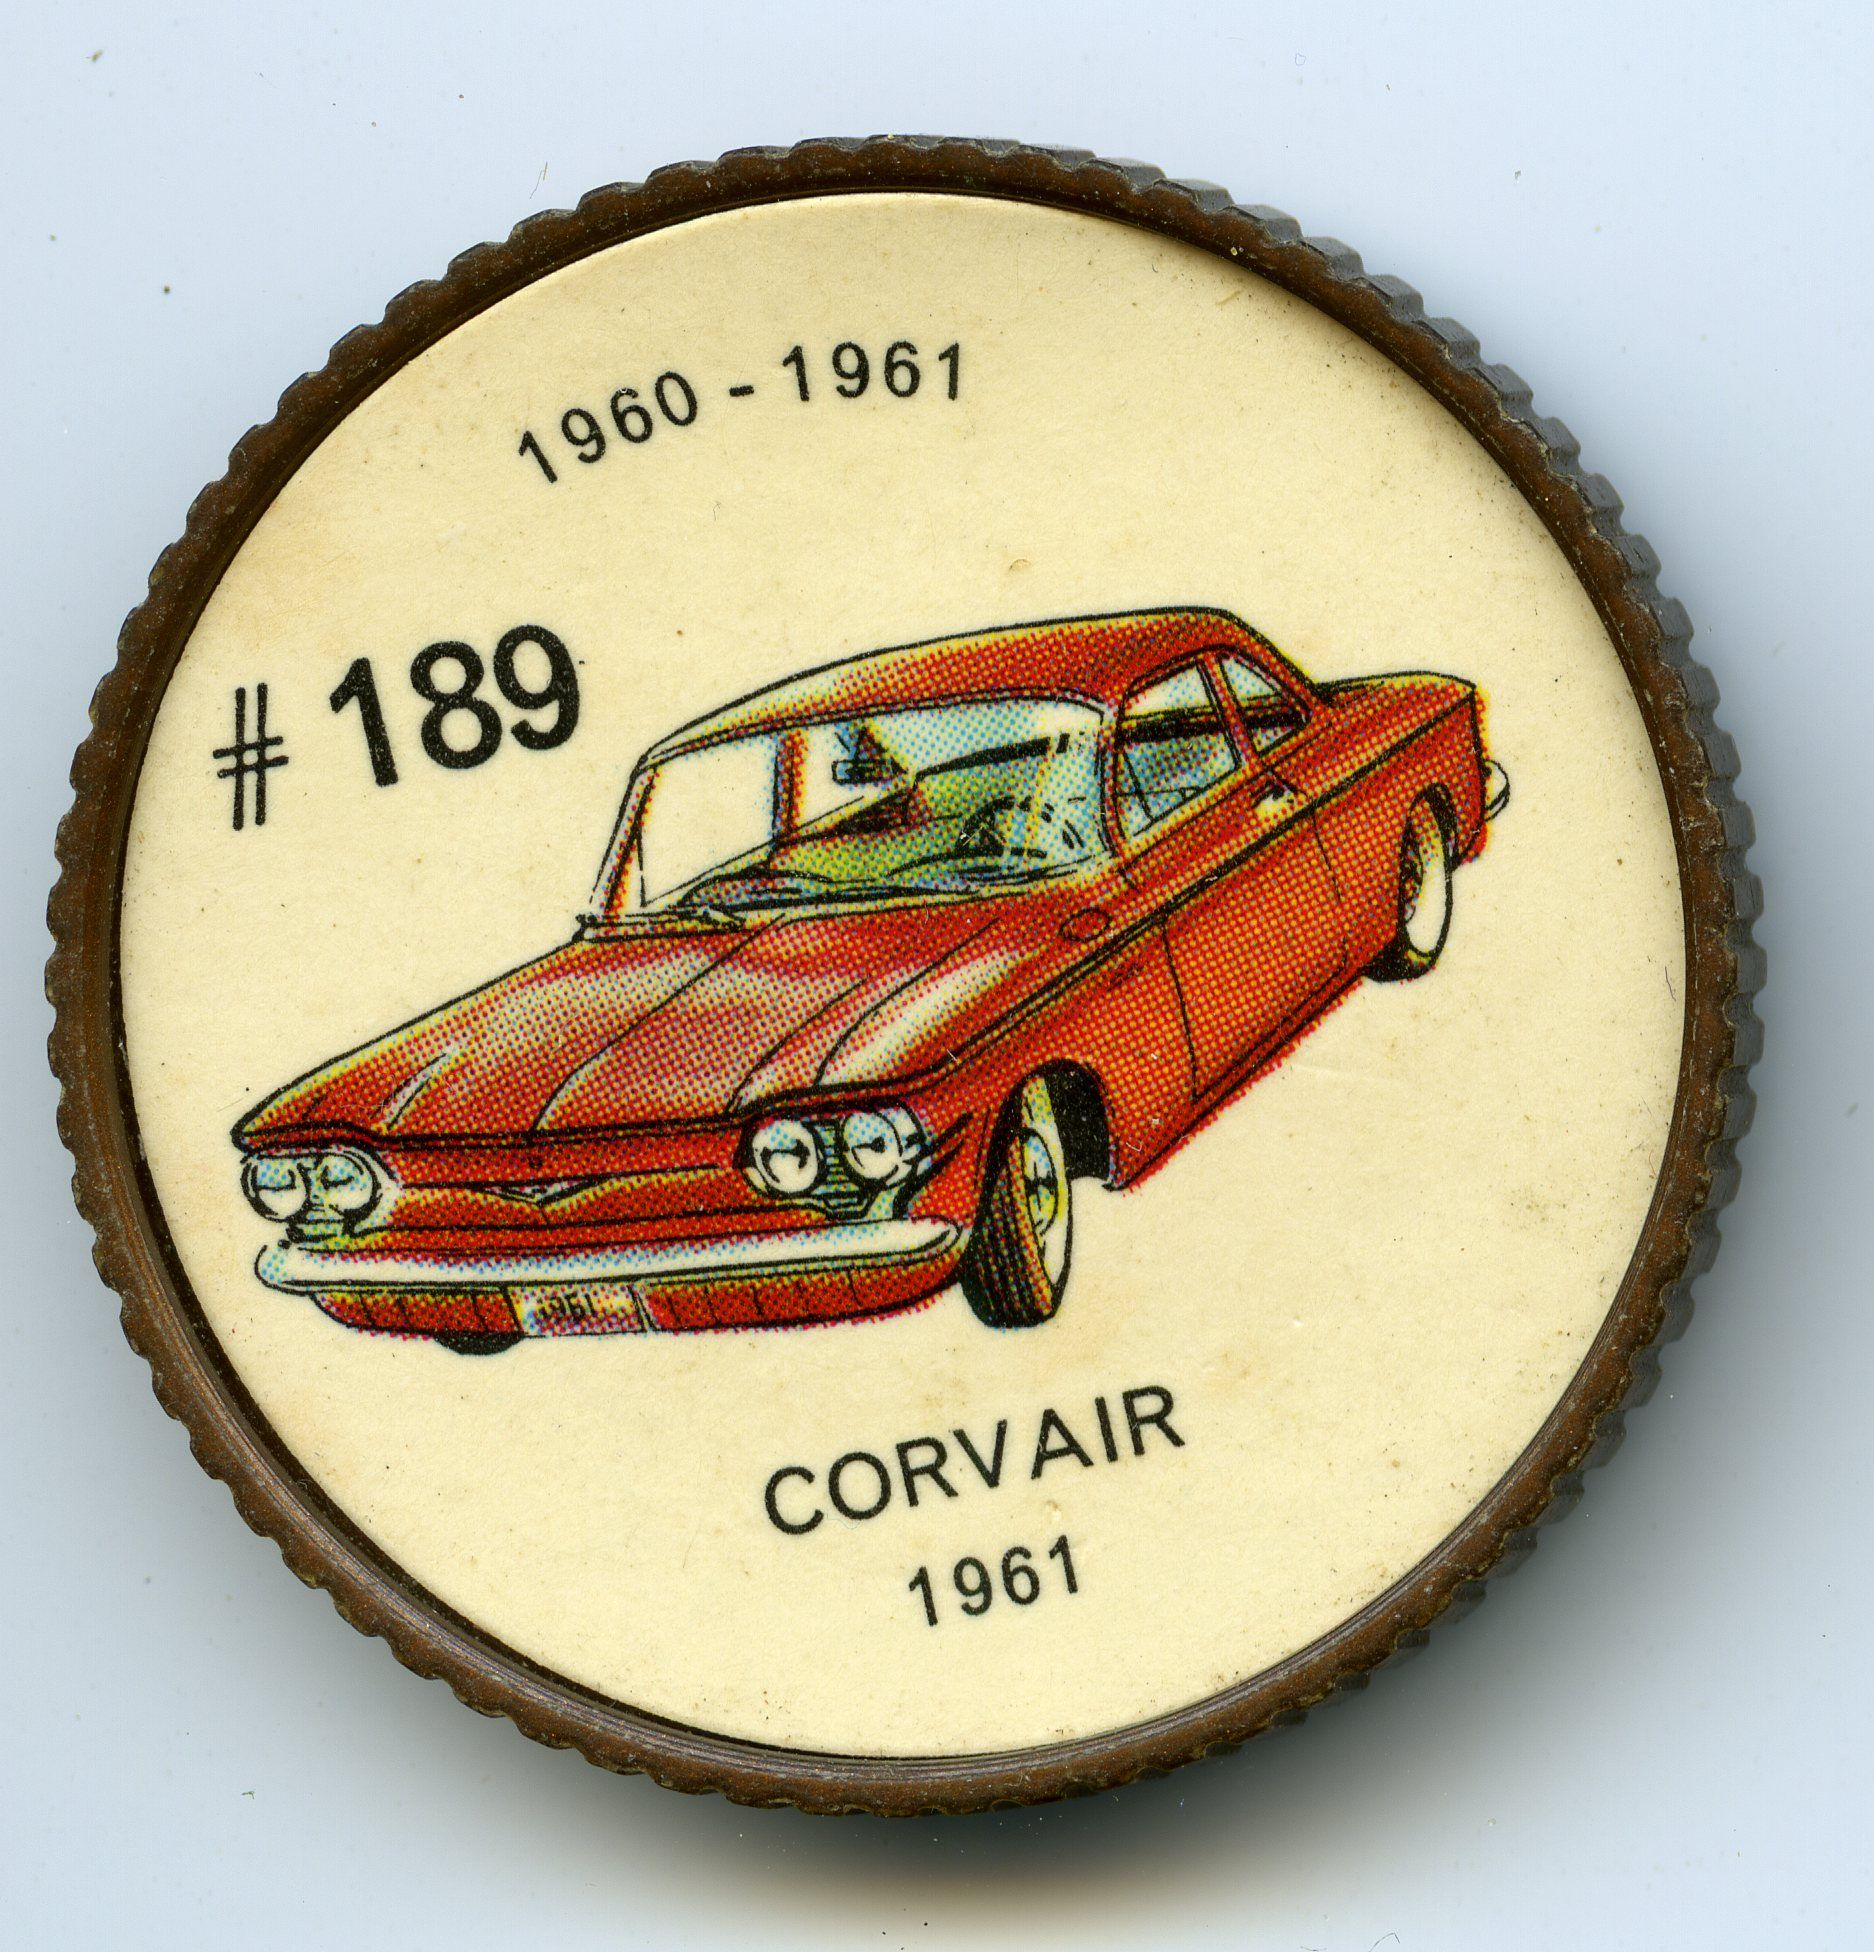 Jello-O Coin 189 - Corvair (1961) - With the Corvair, General Motors won the distinction of producing the only rear engine car in North America. This design provided good traction in snow and eliminated the space-consuming driveshaft tunnel. The flat, six-cylinder, air-cooled engine produced 80 horse power. More luggage space was provided in 1961 by moving the spare wheel to the engine compartment.